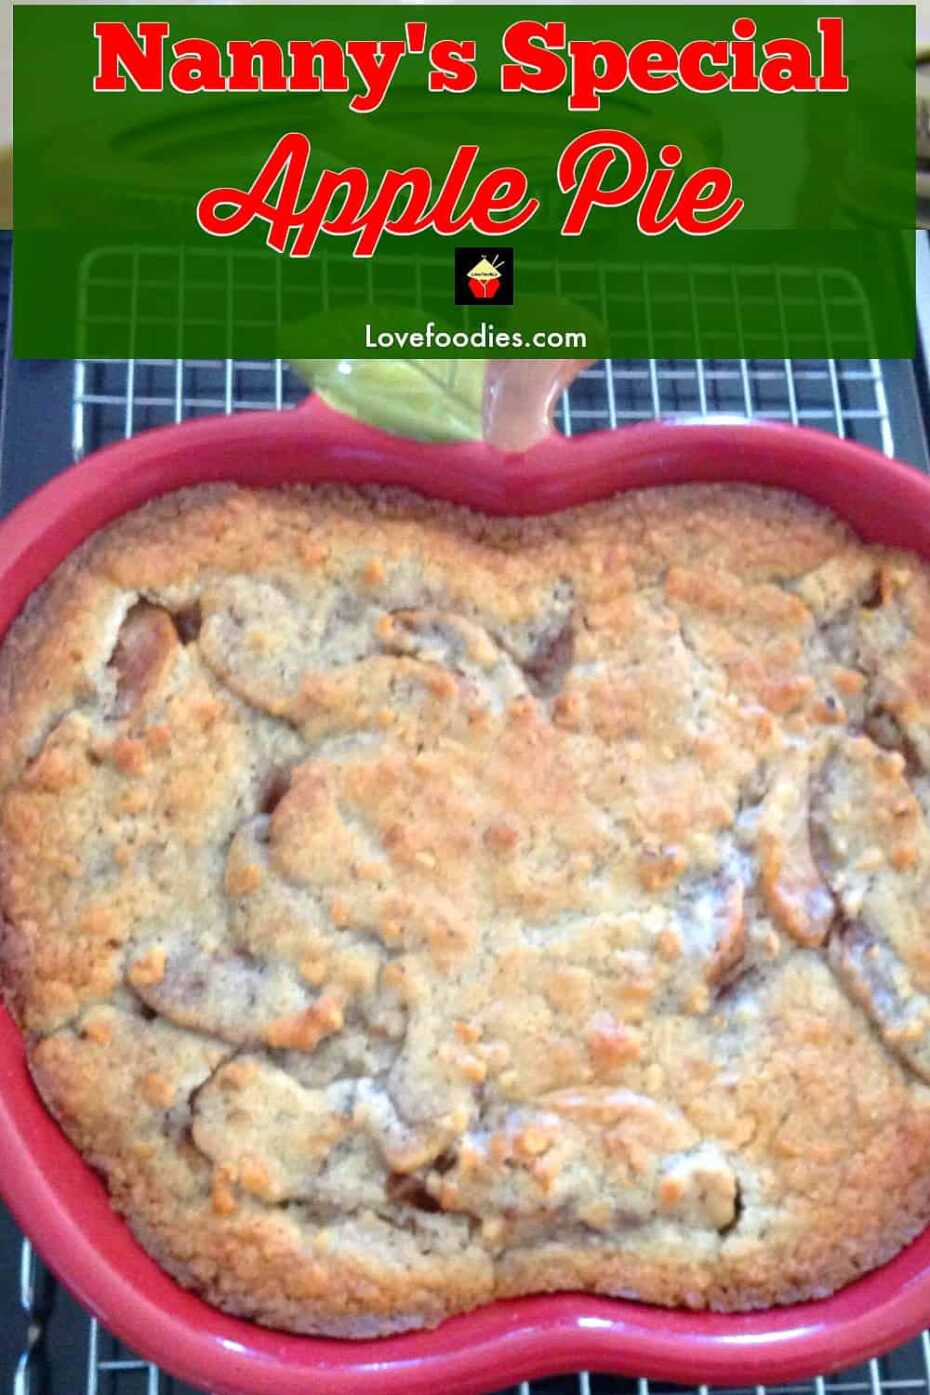 Nannys Special Apple Pie This apple pie is an old family recipe and always very popular, especially for those who prefer a crustless pie!